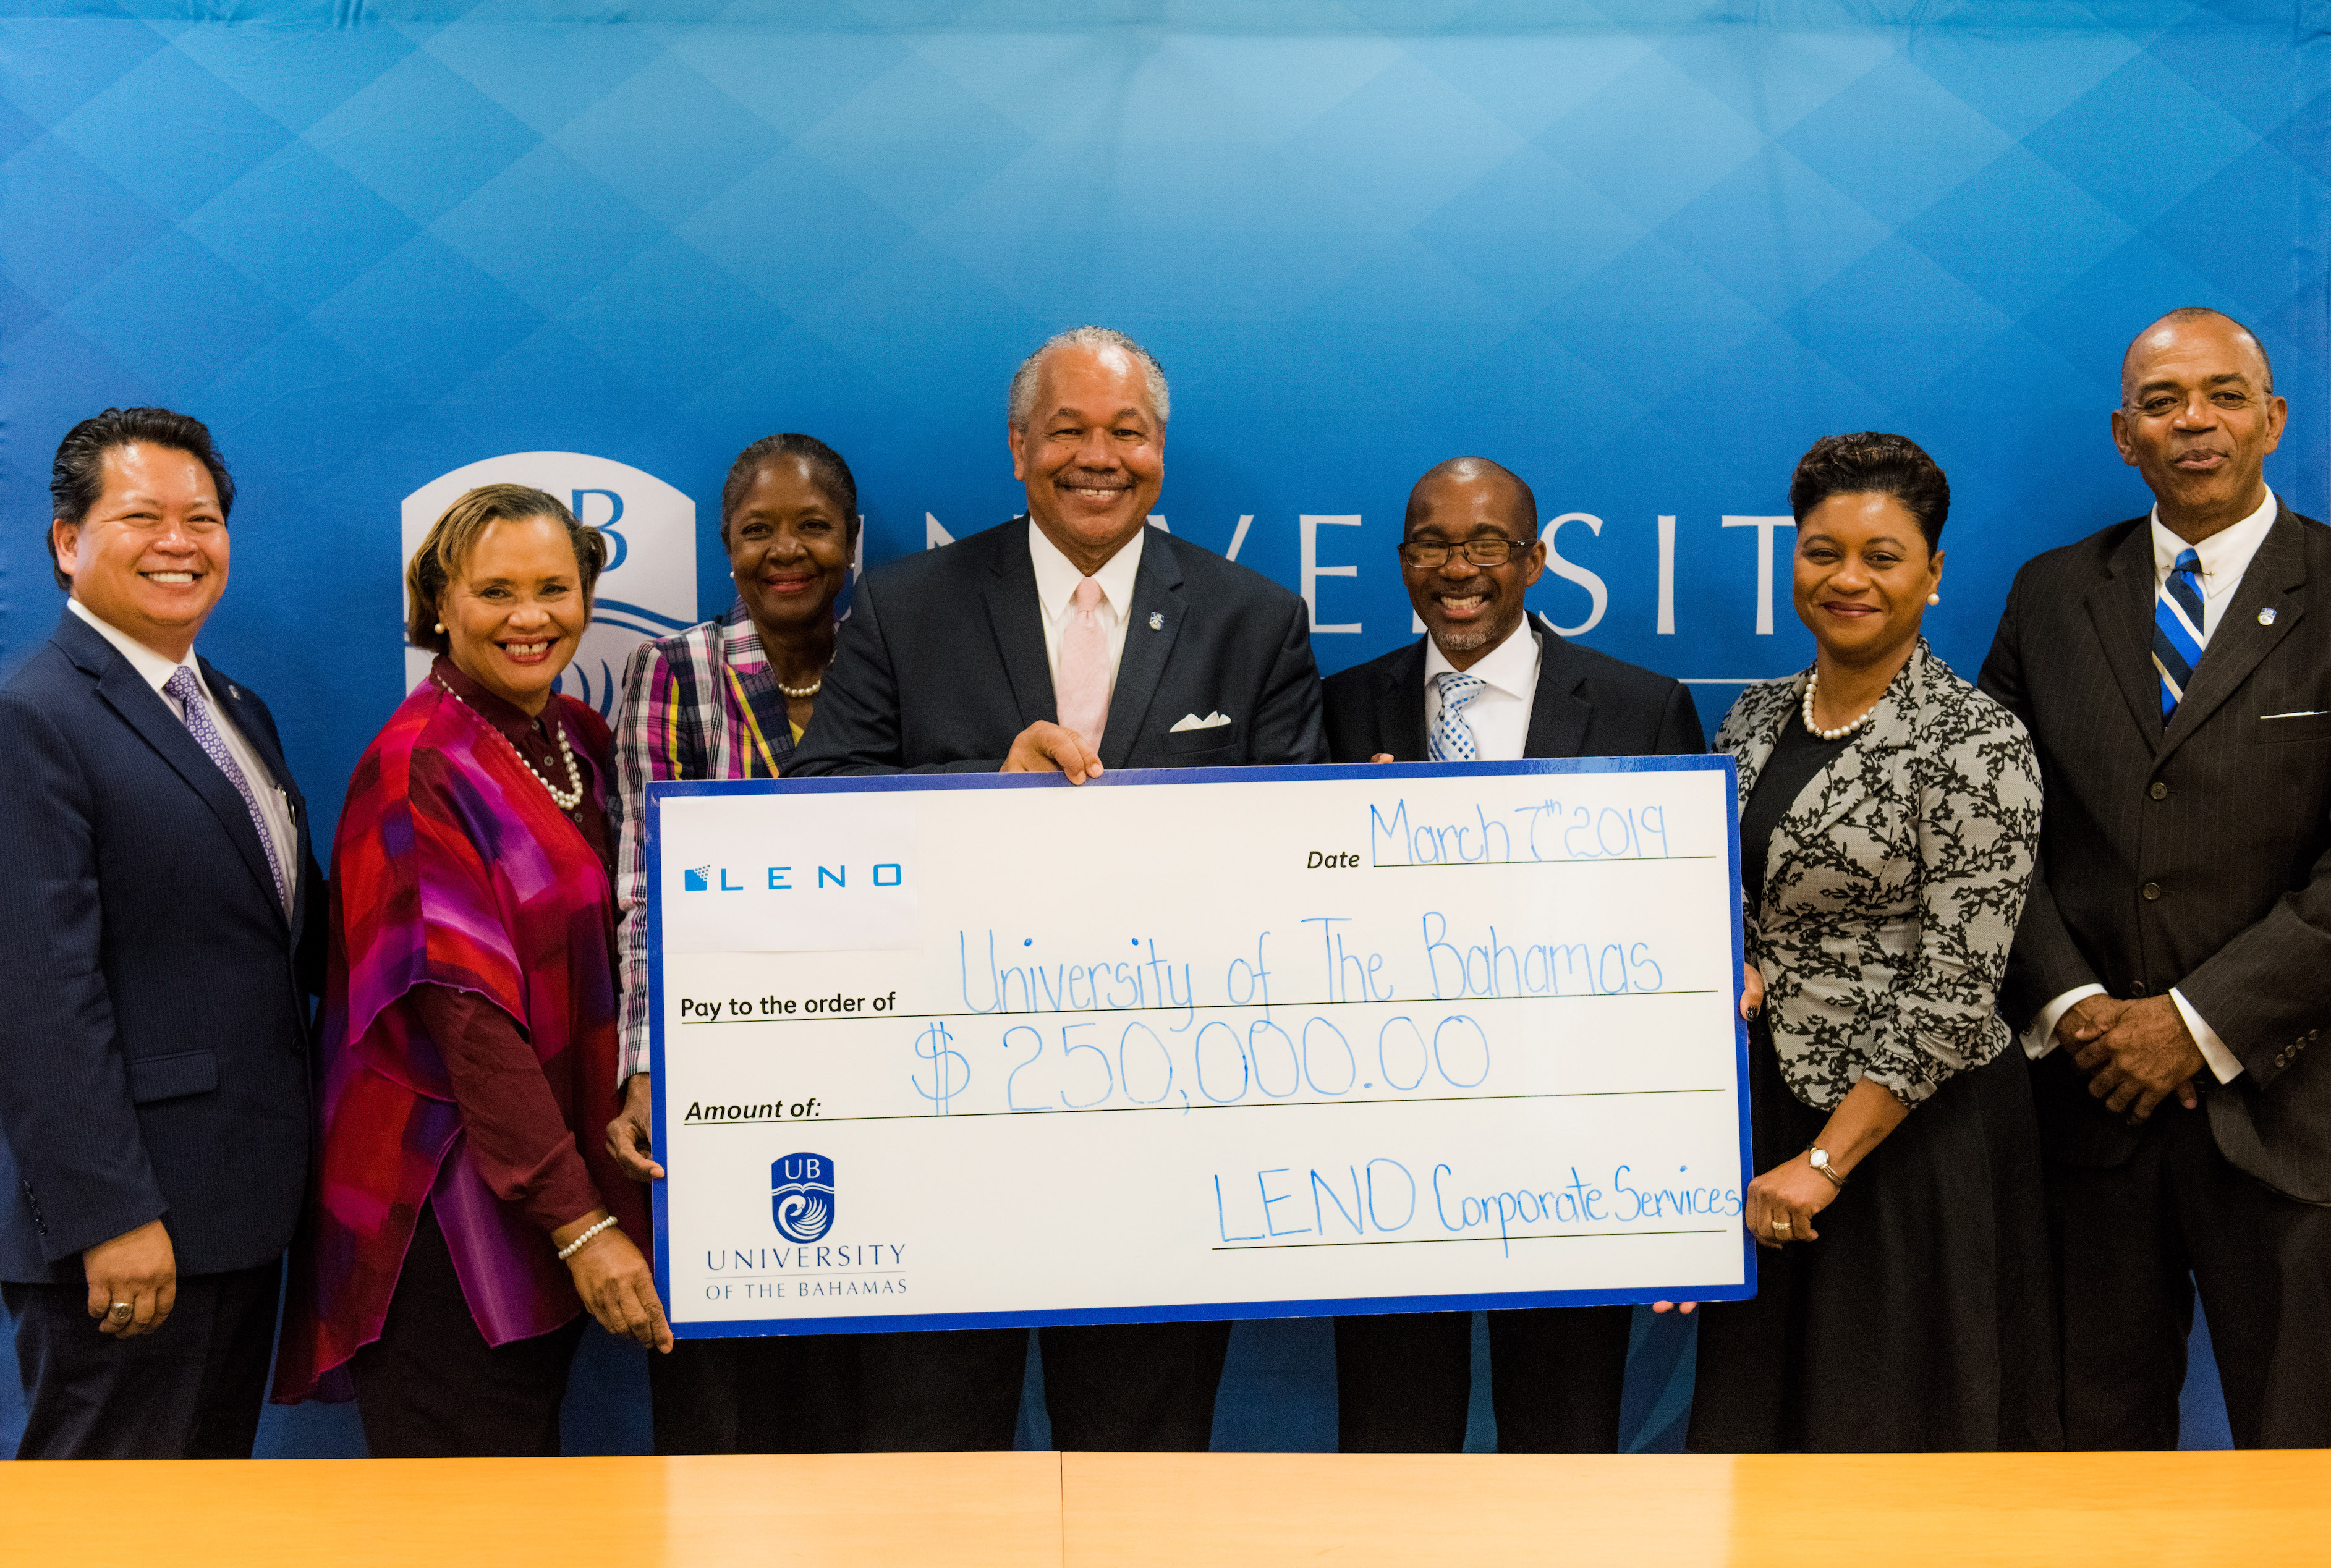 LENO signs $250,000 MOU for endowed scholarships at UB